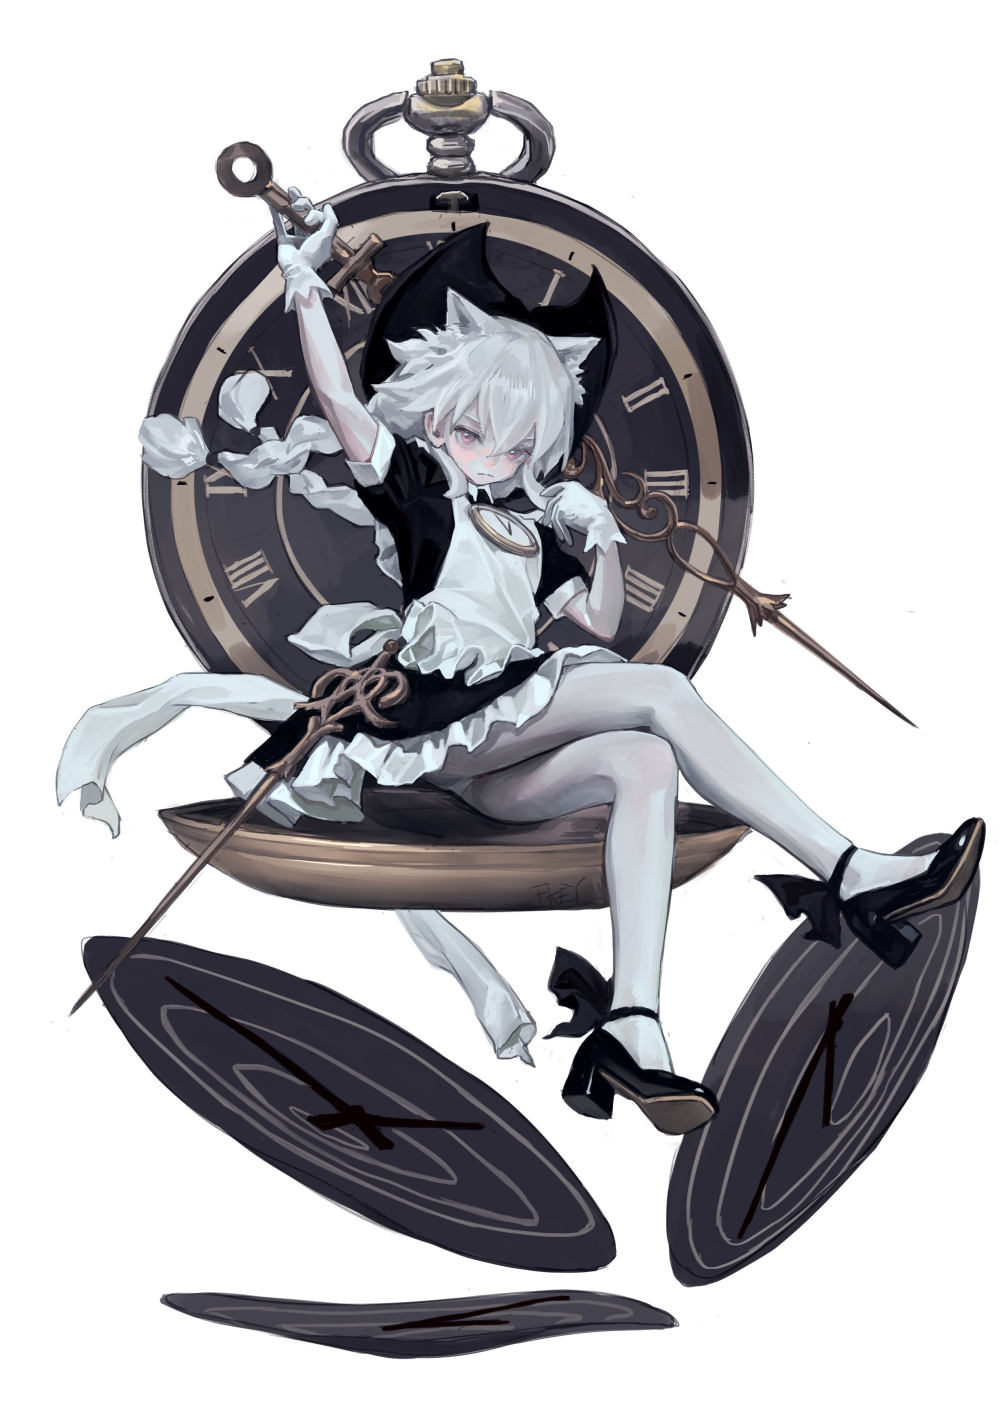 1girl animal_ears apron black_footwear cat_ears clock clock_hands closed_mouth commentary fkey gloves hat highres maid_apron original pocket_watch solo watch white_background white_gloves white_hair white_legwear witch_hat